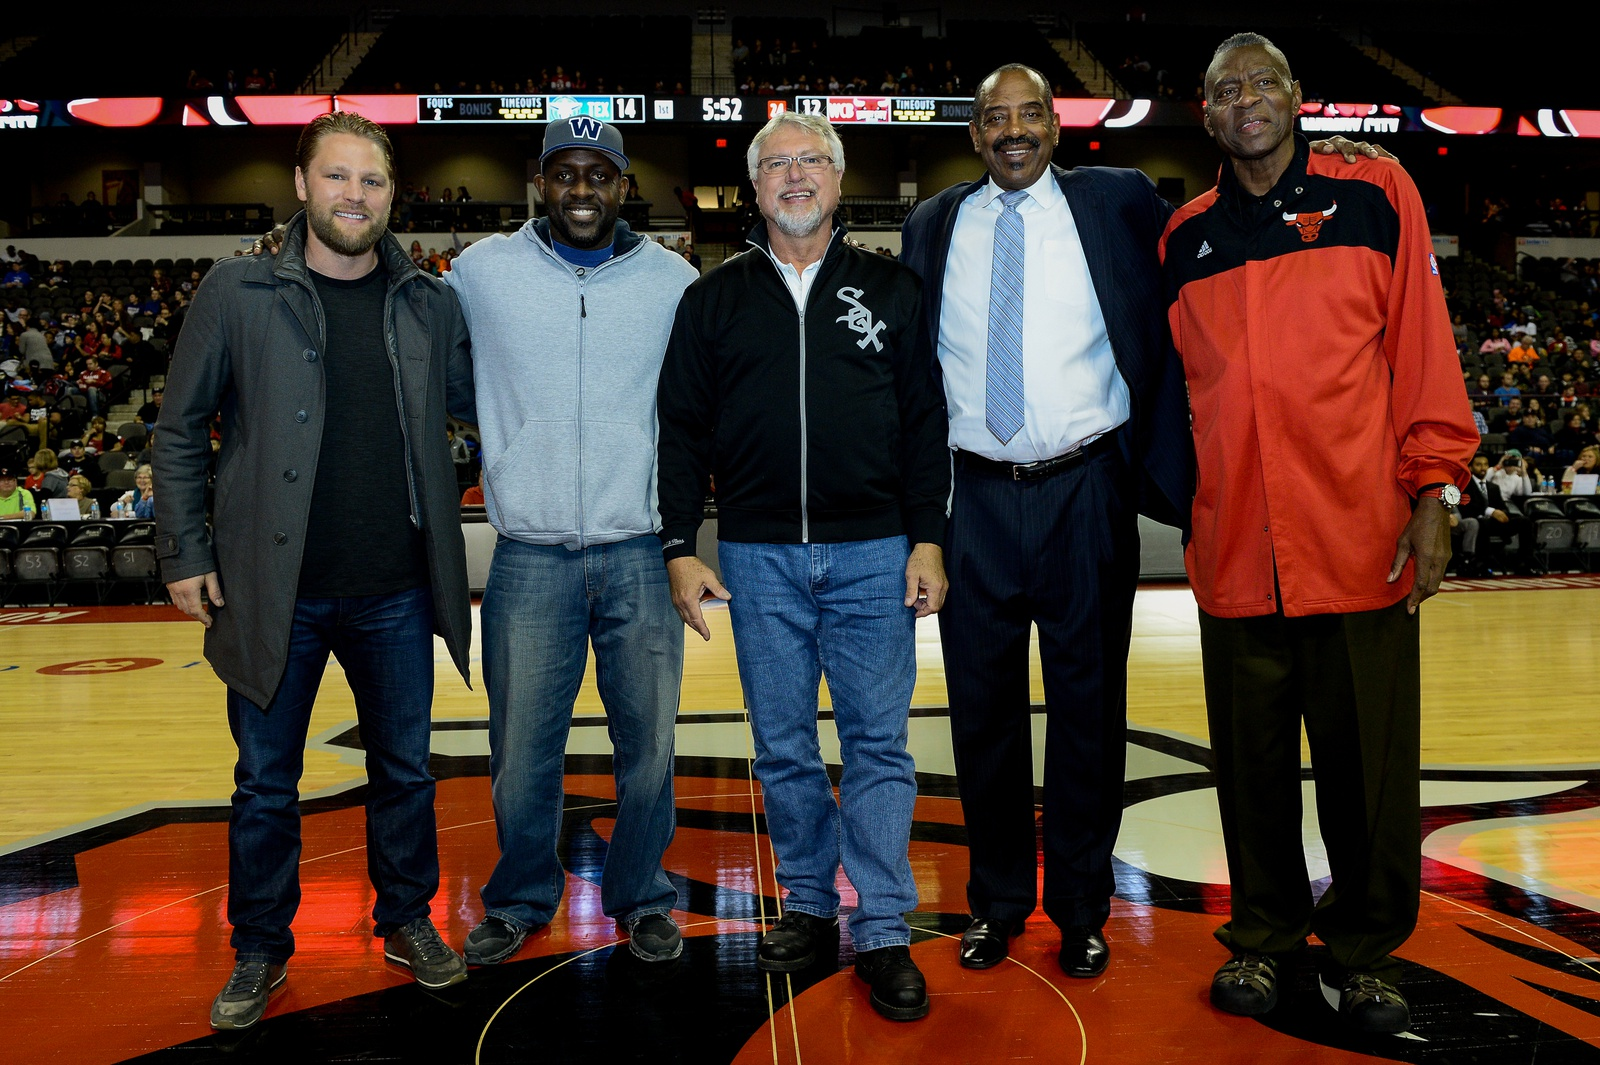 (L-R) Ben Eager (Chicago Blackhawks), Desmond Clark (Chicago Bears), Ron Kittle (Chicago Whitesox), Mickey Johnson and Bob Love of the (Chicago Bulls) posed for a photo center court during the game between the Windy City Bulls and the Texas Legends on November 19, 2016 at The Sears Centre in Hoffman Estates, Illinois.